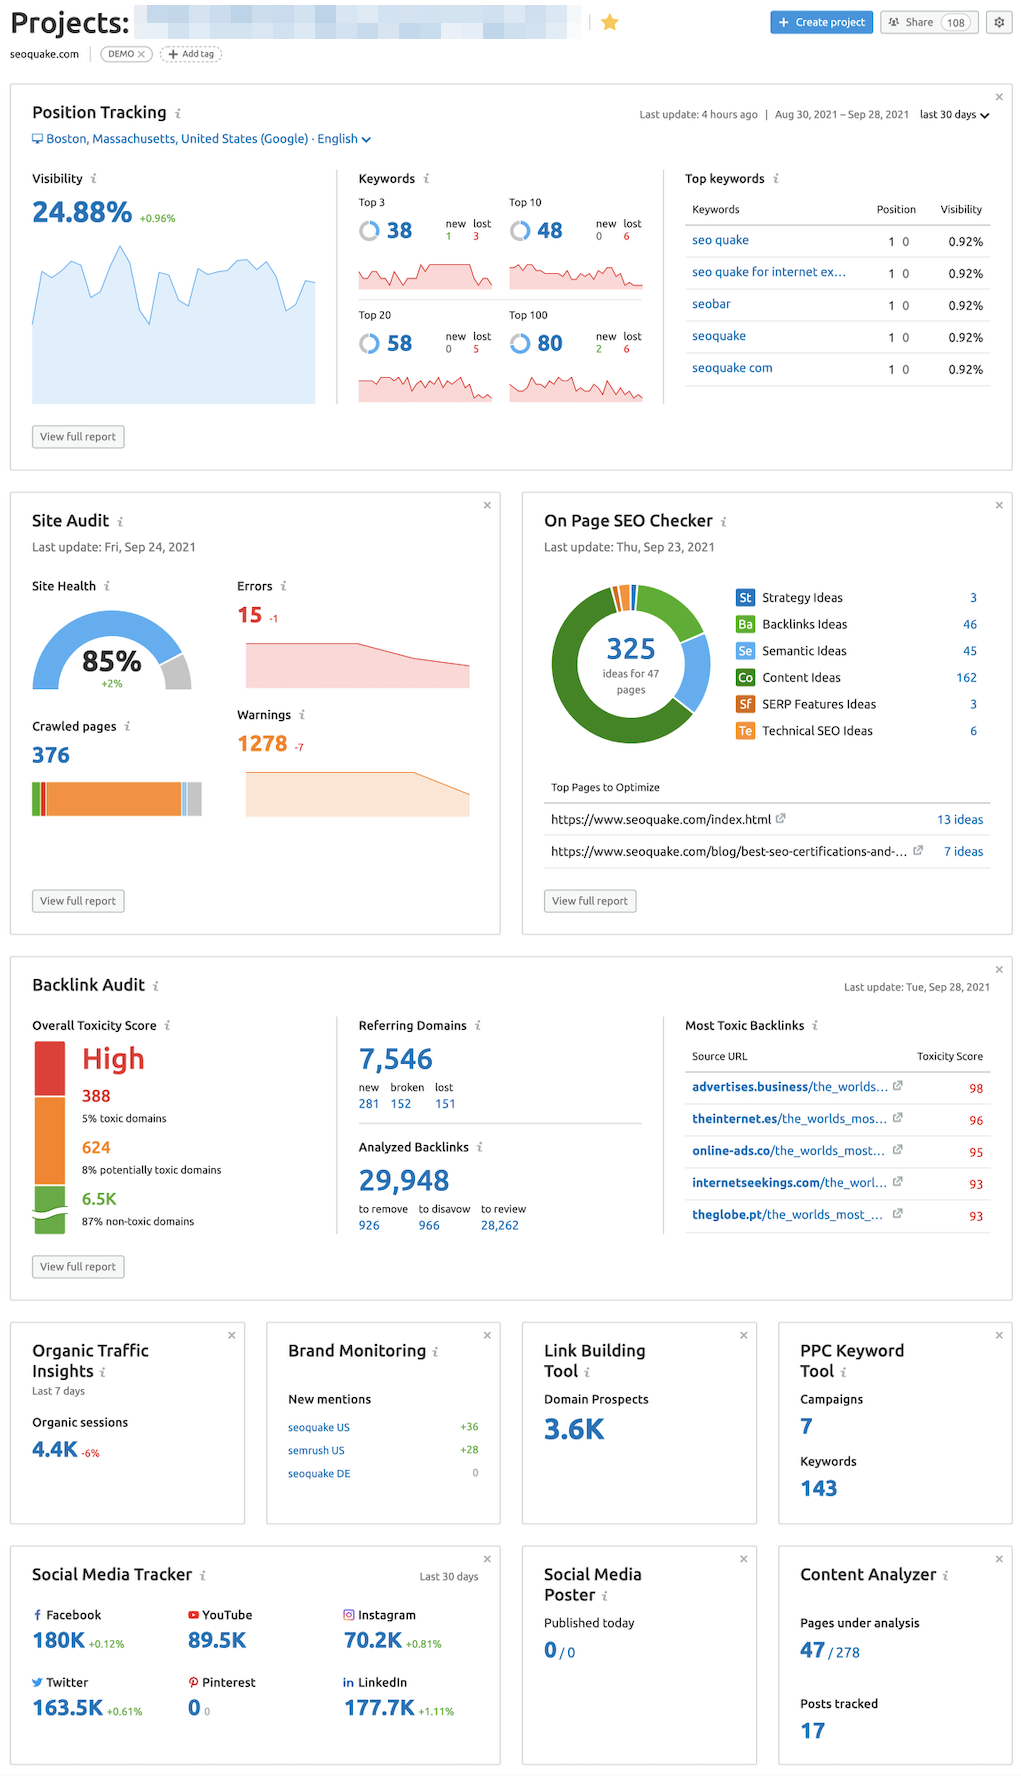 How to Onboard a New Client with Semrush image 1